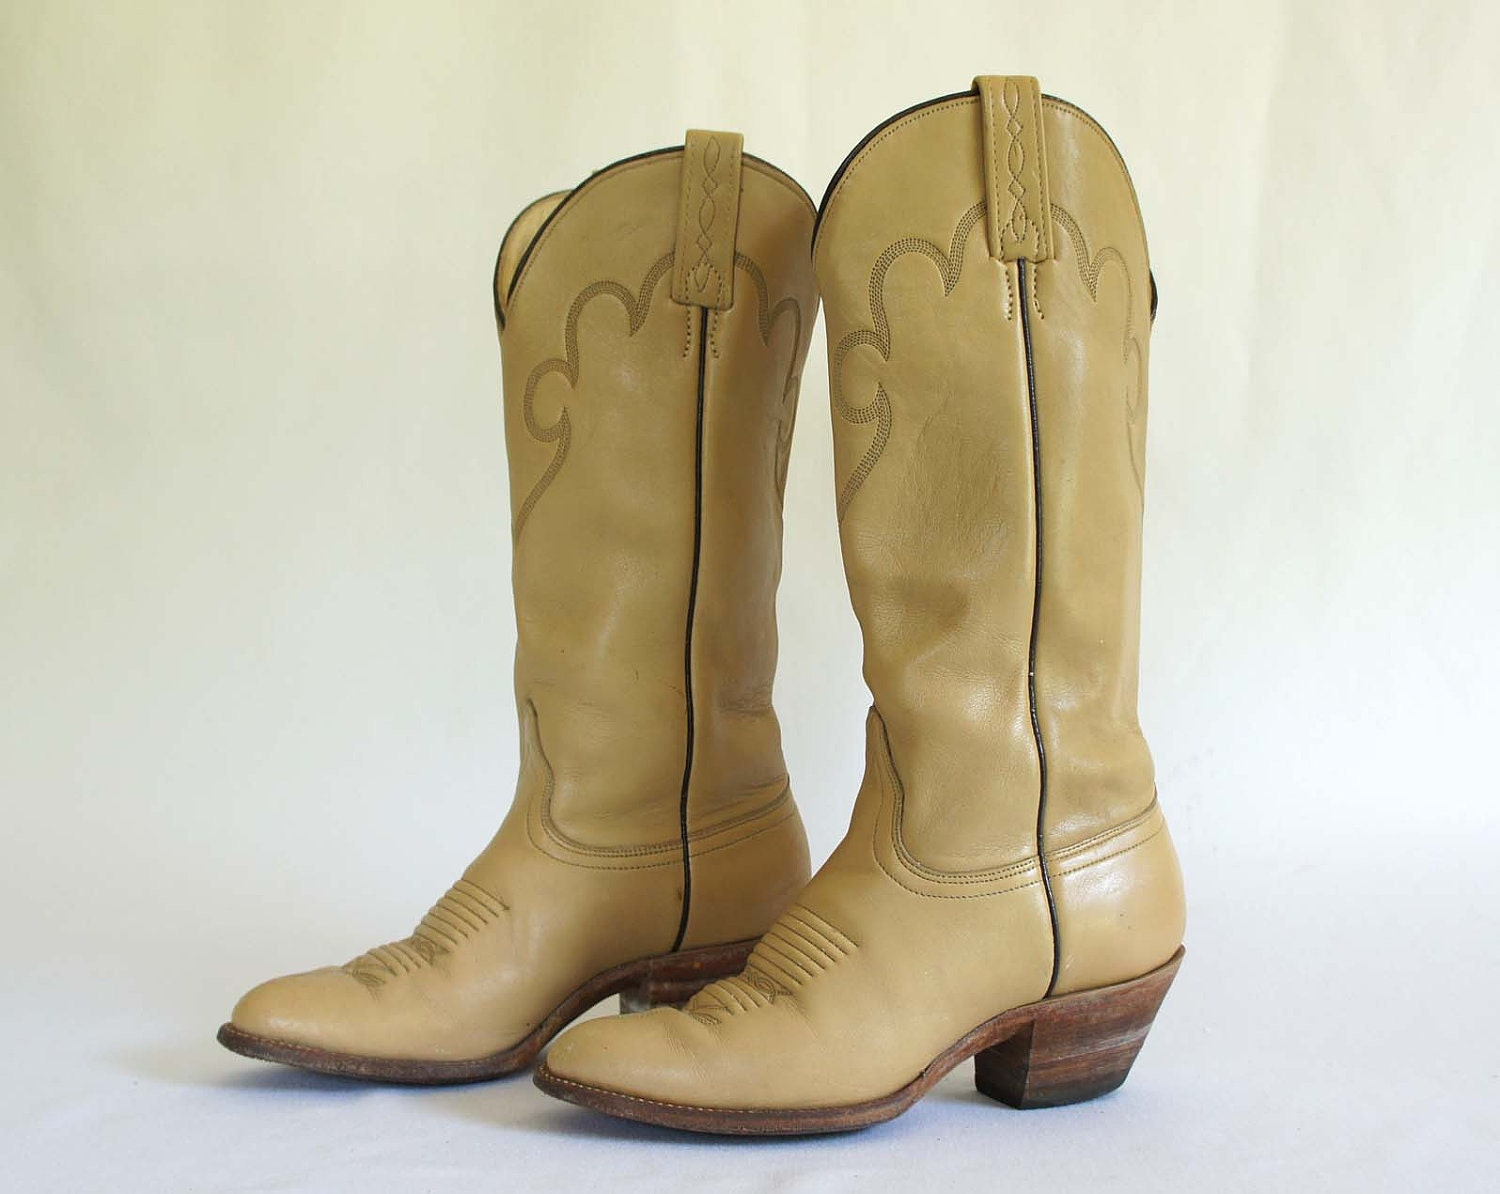 vintage cowboy boots by j chisholm in a by